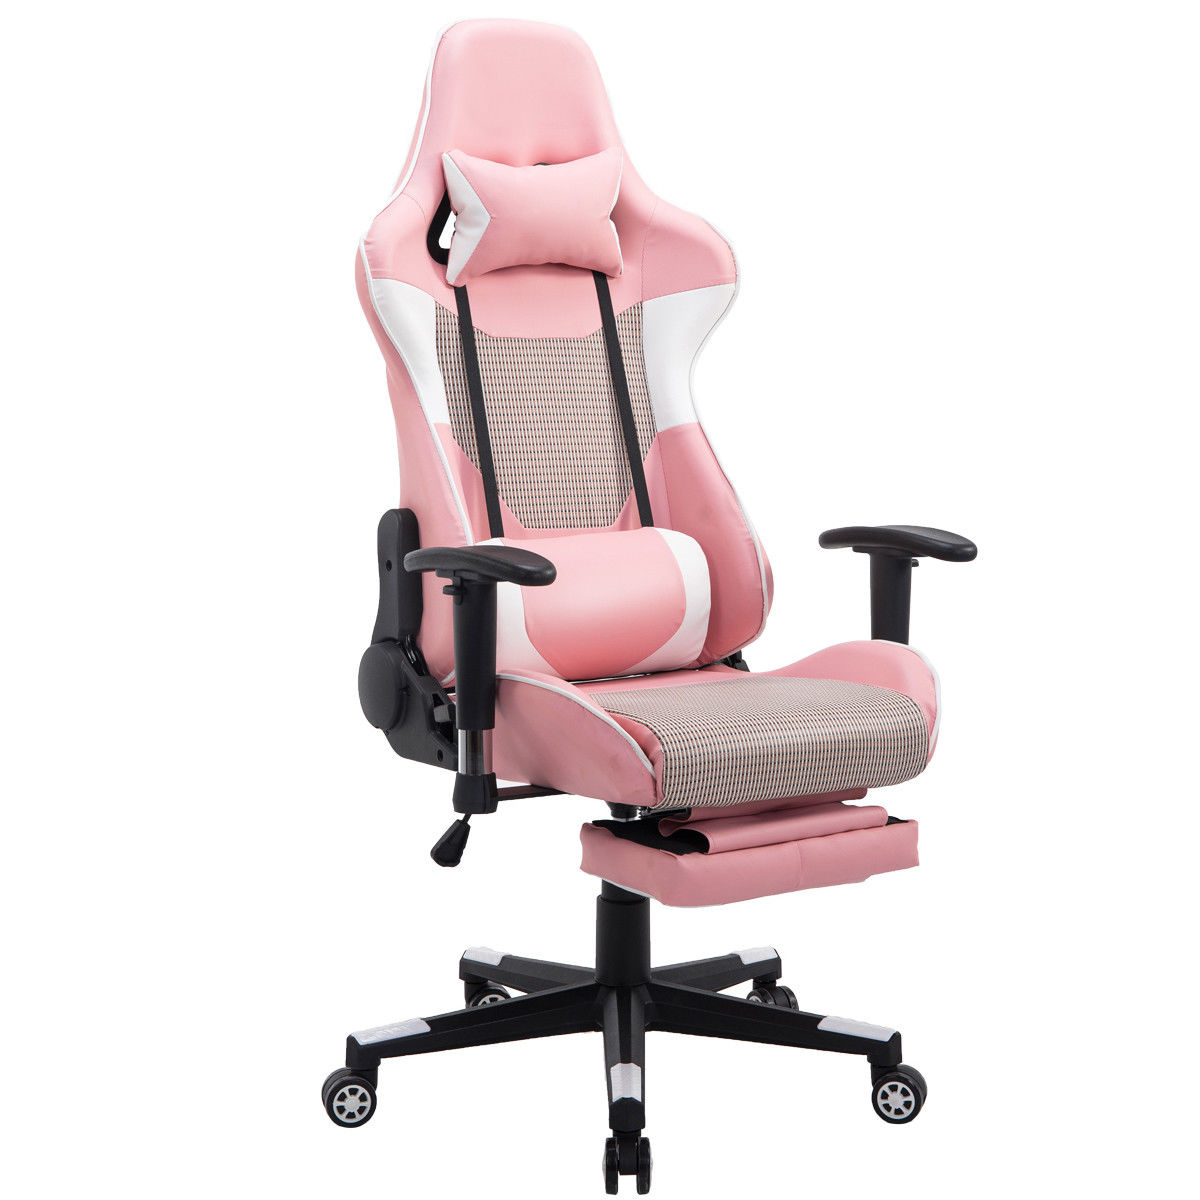 ergonomic chair with footrest red club chairs giantex modern reclining gaming high back racing